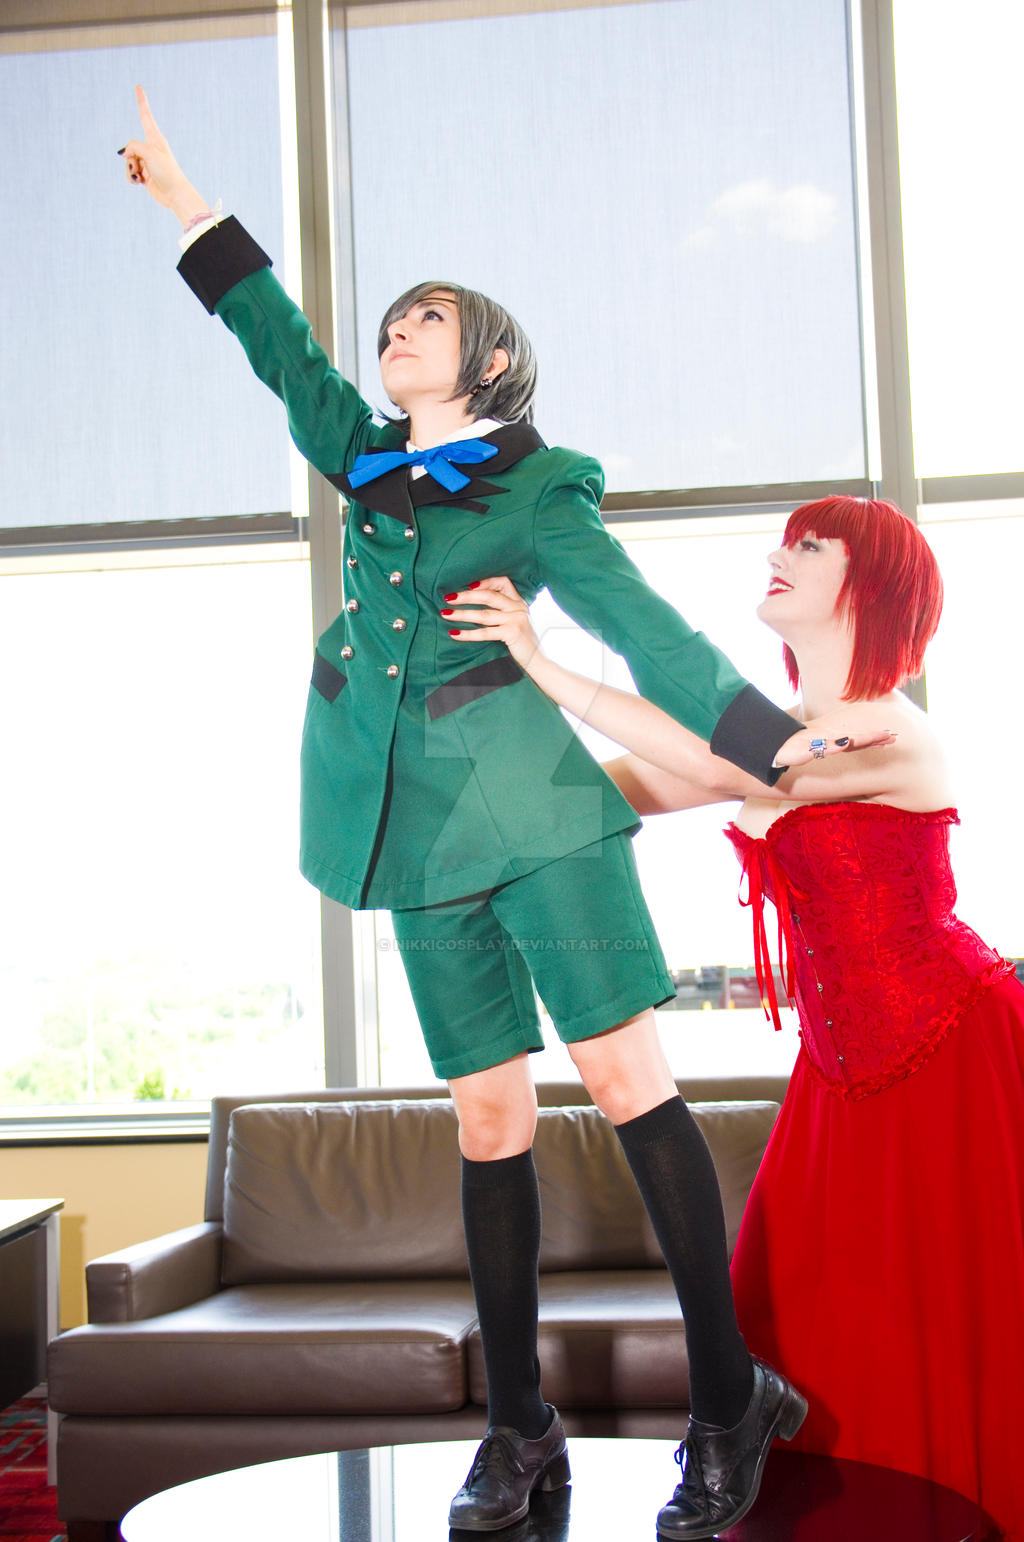 Reach for the stars! by NikkiCosplay